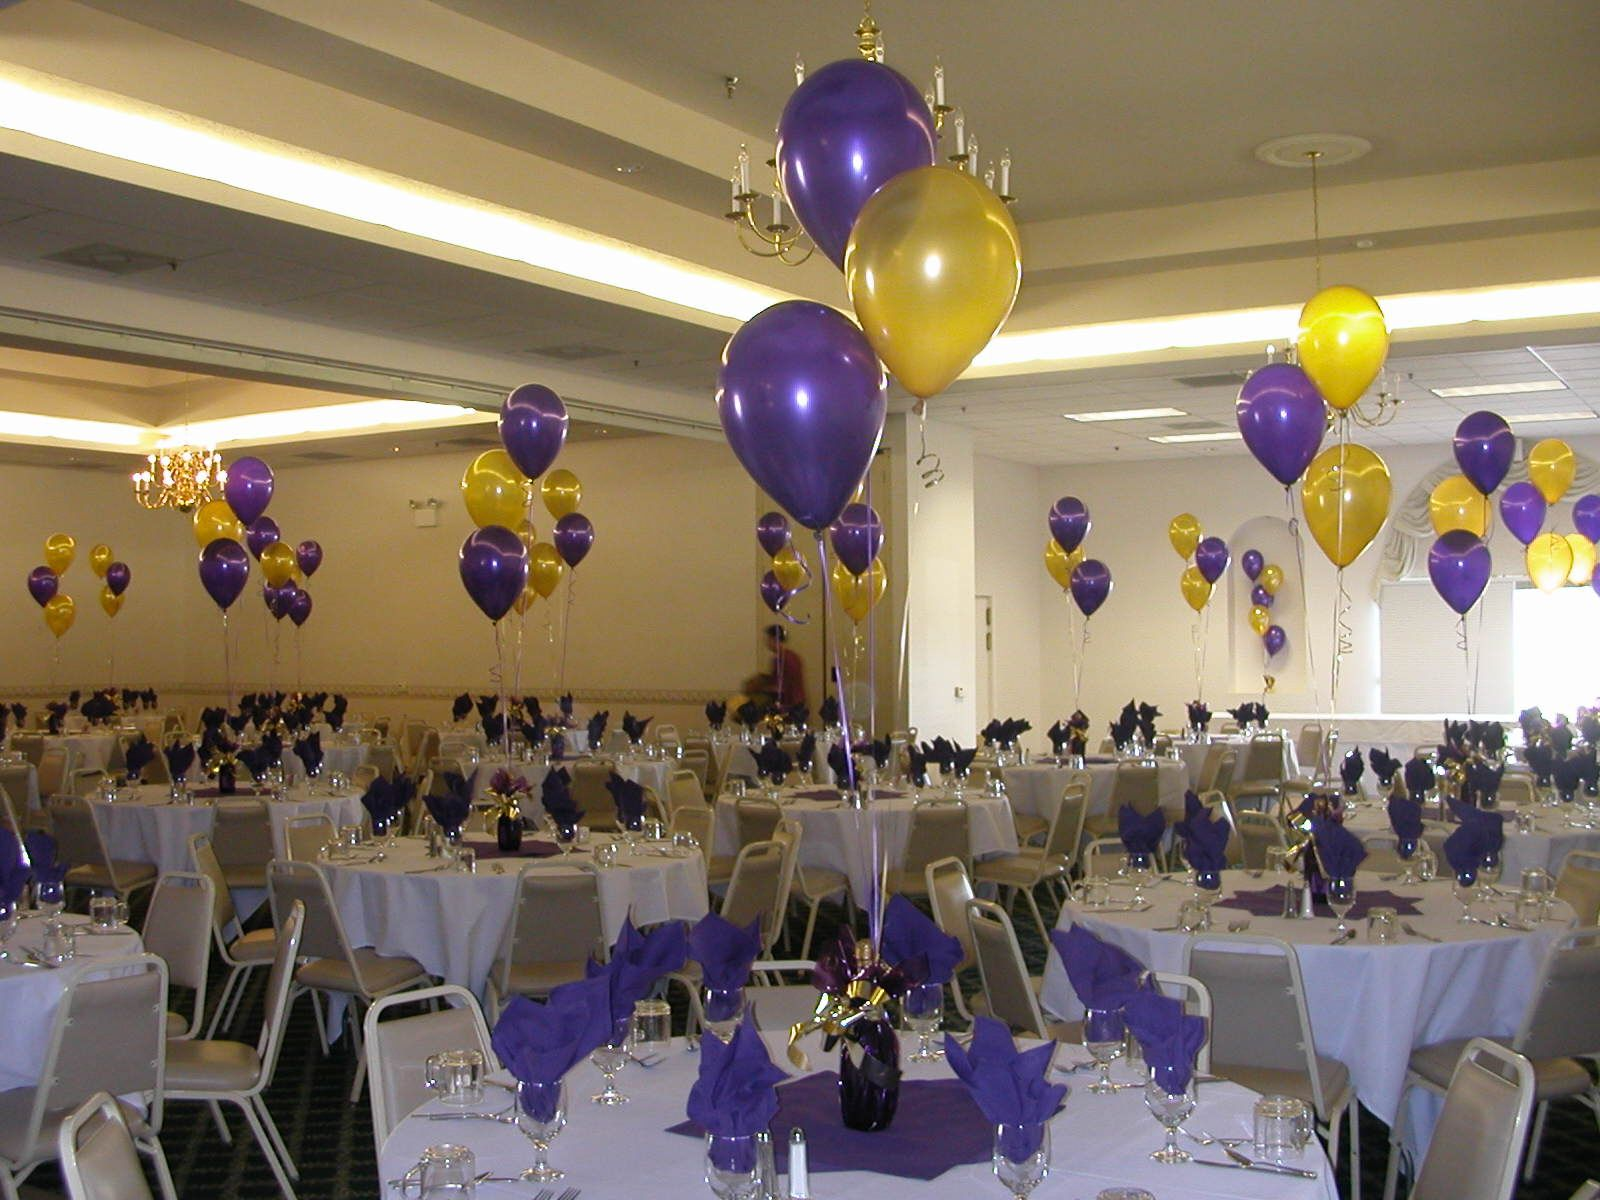 Graduation table decorations homemade - Graduation Centerpiece Ideas Balloon Decor Of Central California Centerpiece